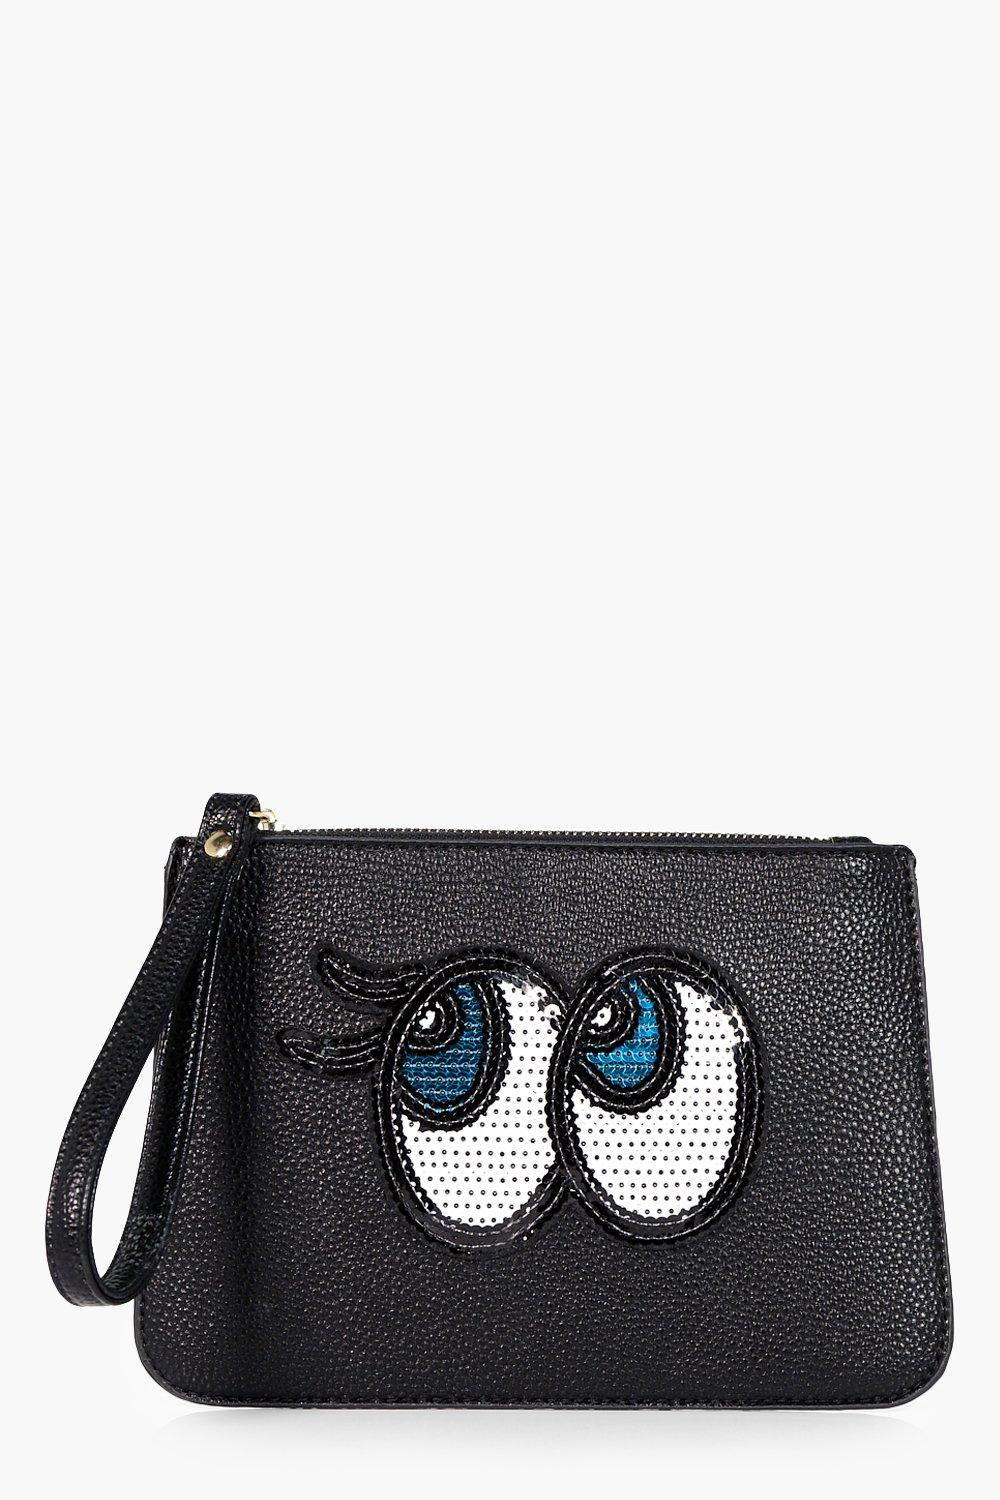 Sequin Eyes Handstrap Clutch - black - Ebony Sequi